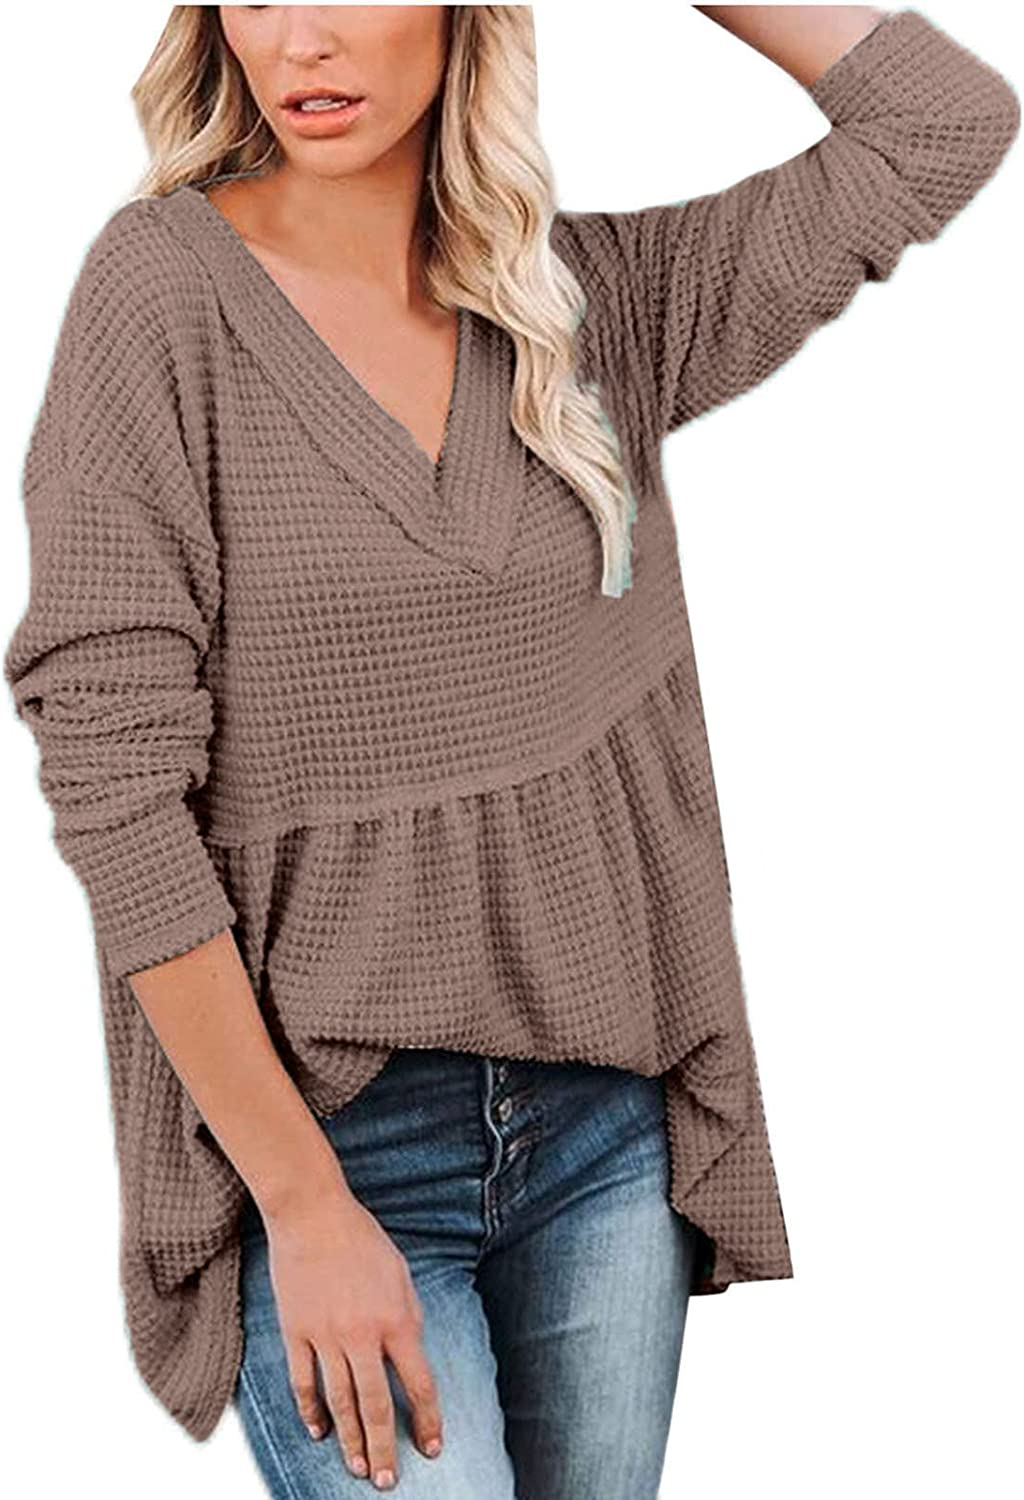 Sweaters for Women Long Sleeve Fall & Spring Clothes Deep V Neck Knit Jumper Casual Swing Pullover Plain Going Out Tops